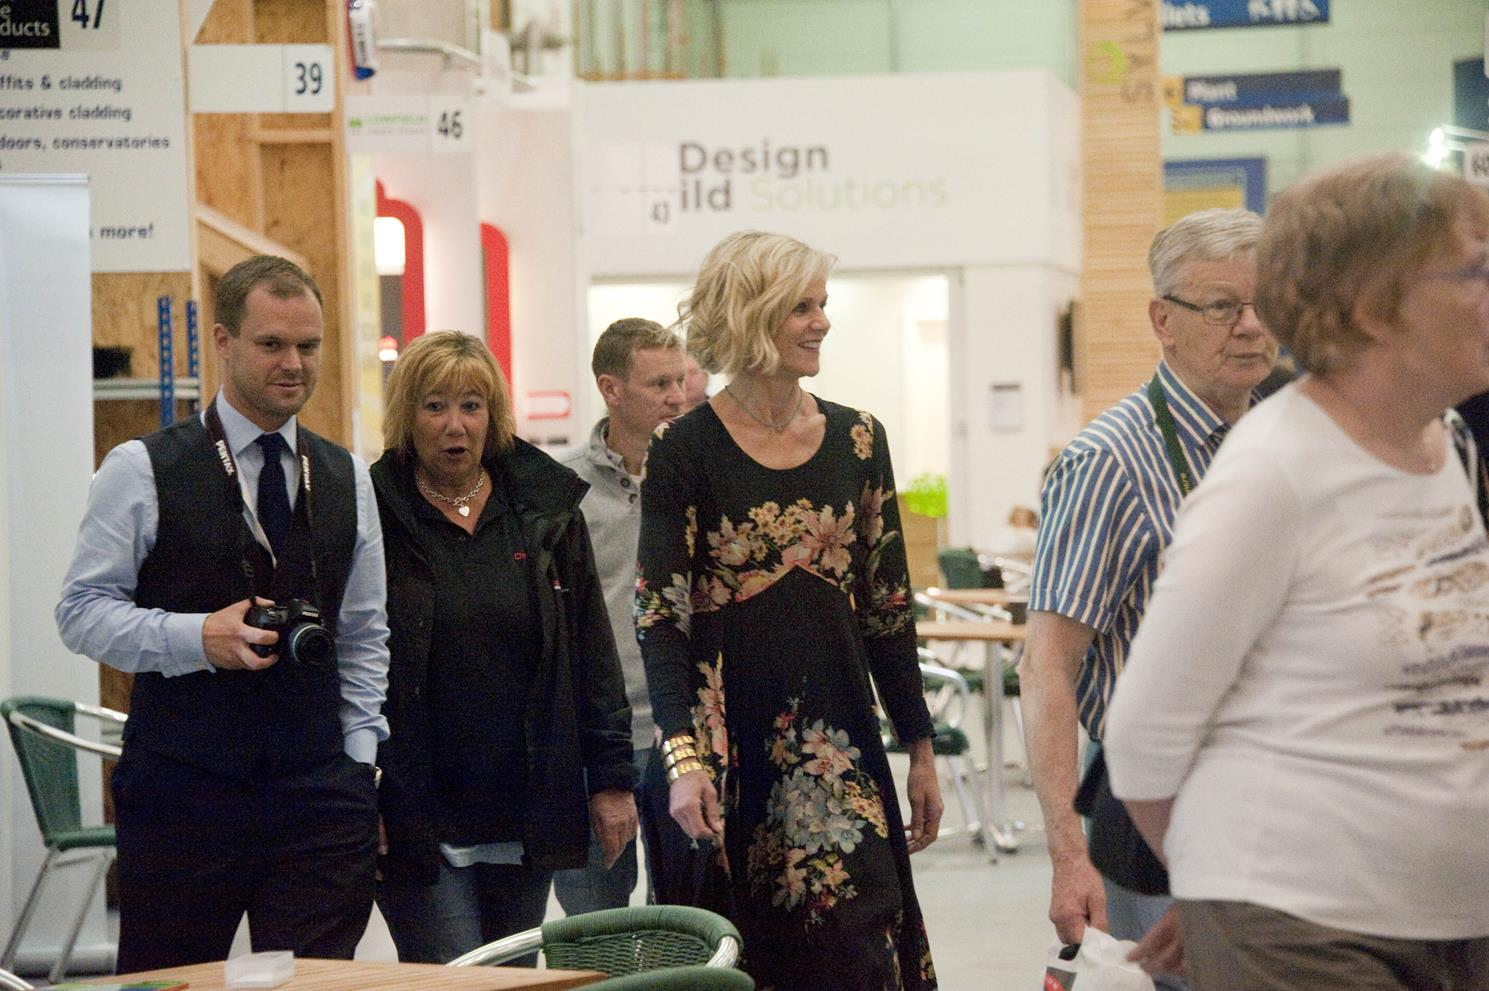 Snapped Linda Barker At The Big Home Improvement Show